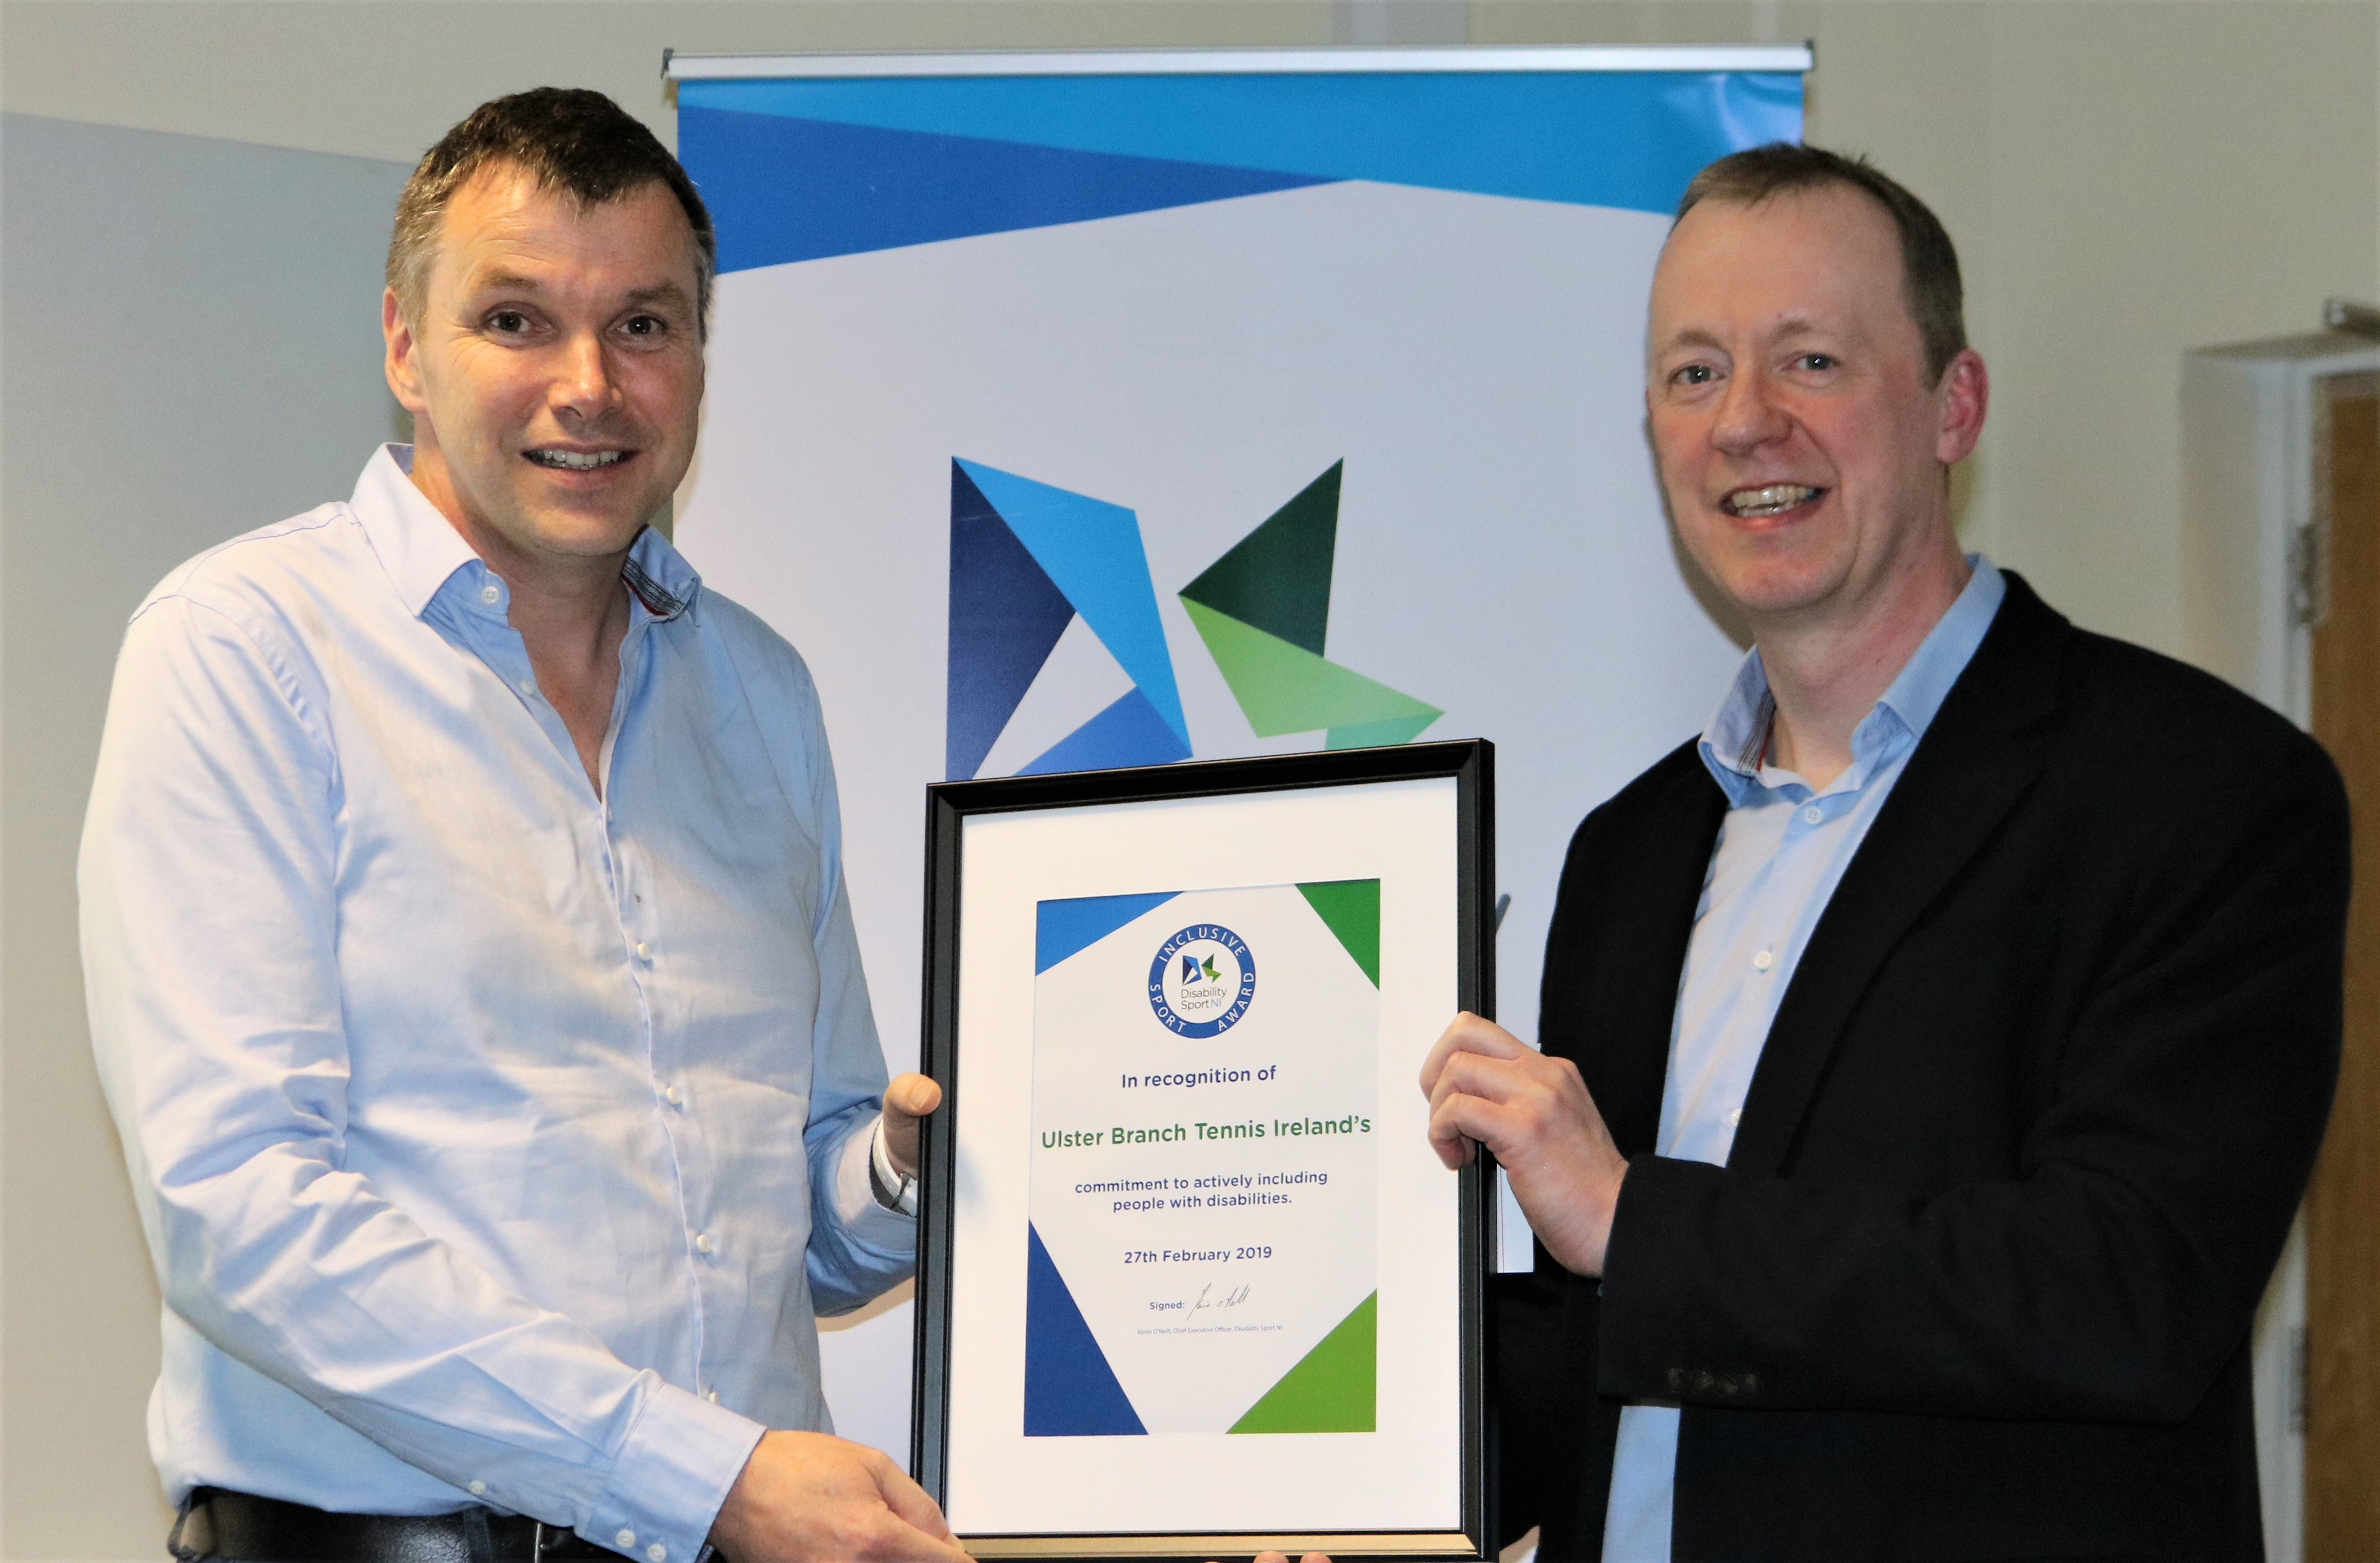 An image of two people holding a certificate.